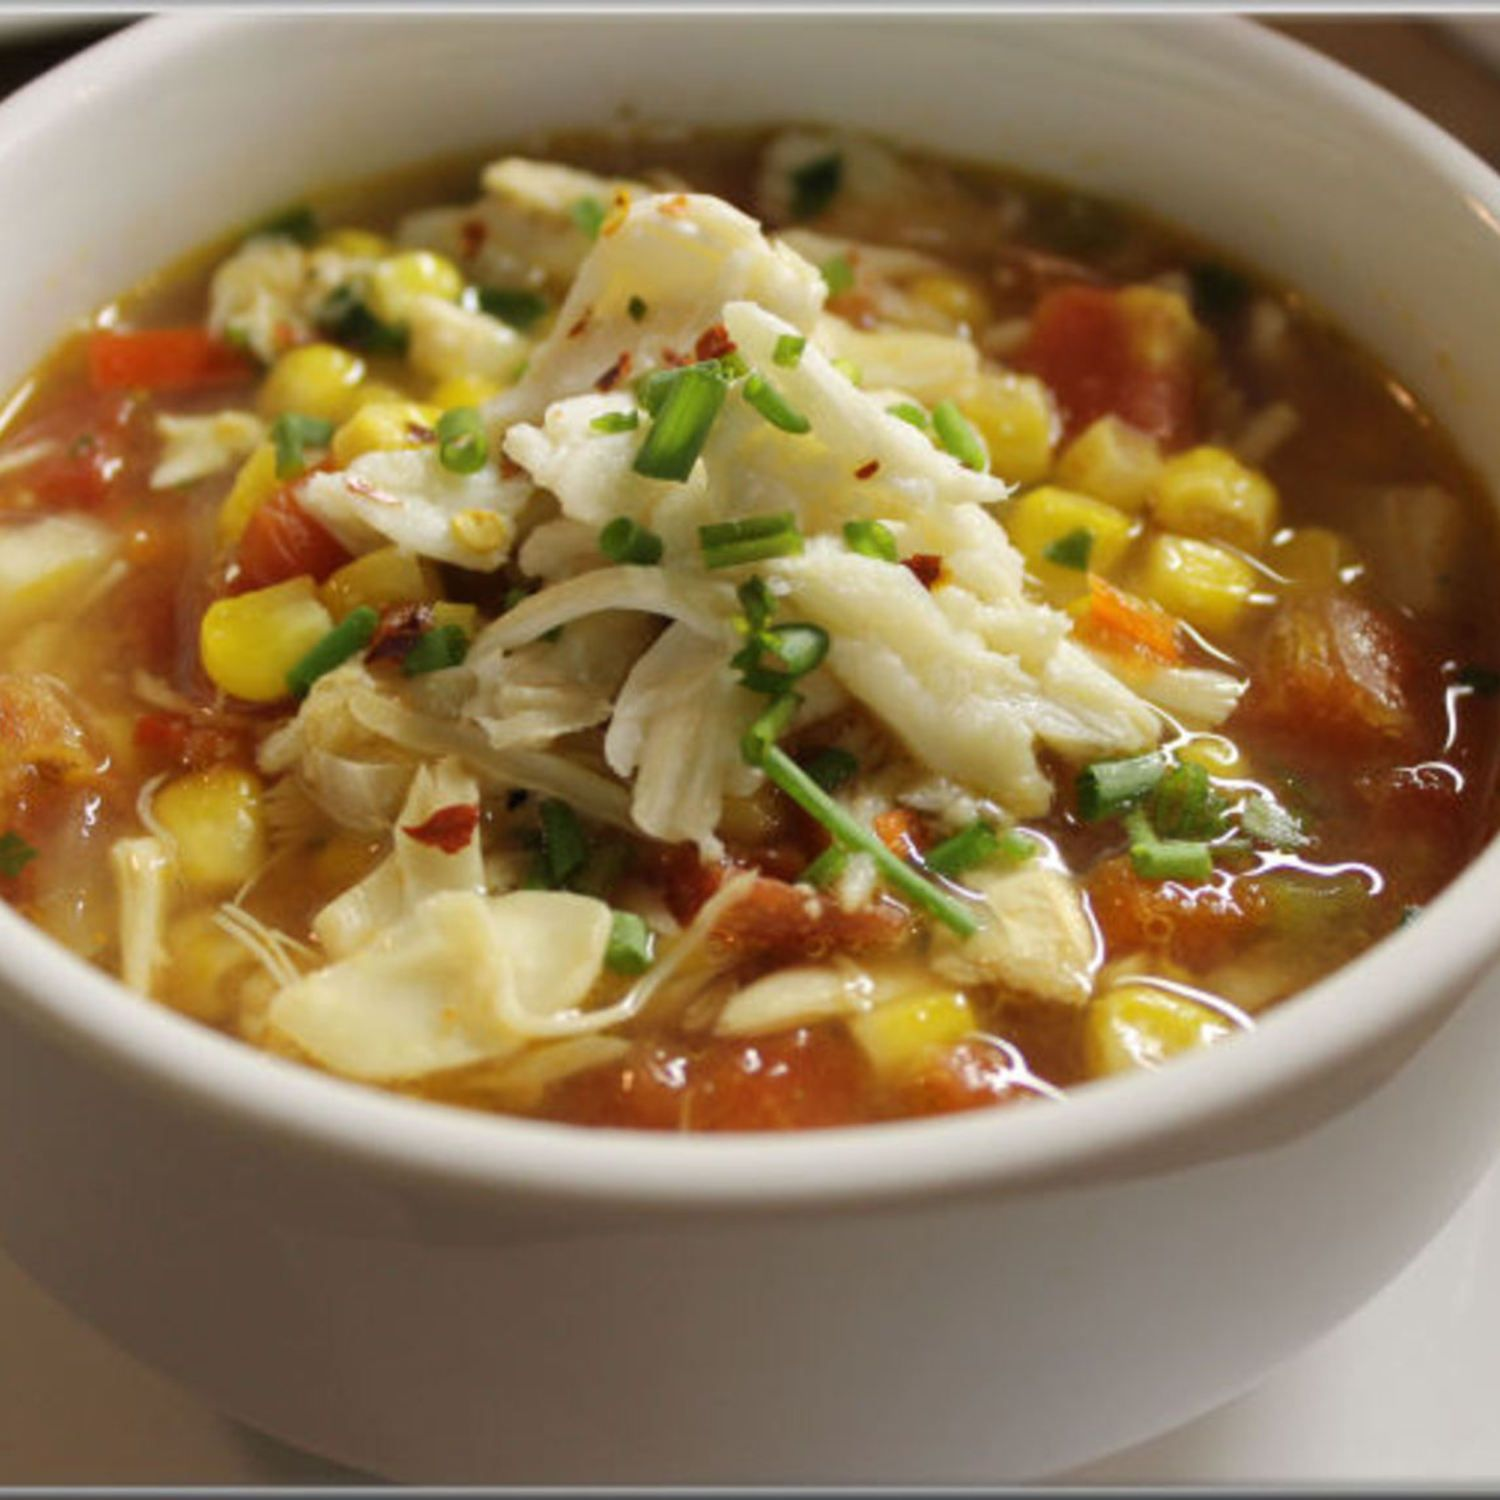 How To Make Old-School Baltimore Crab Soup - Bring a large ...